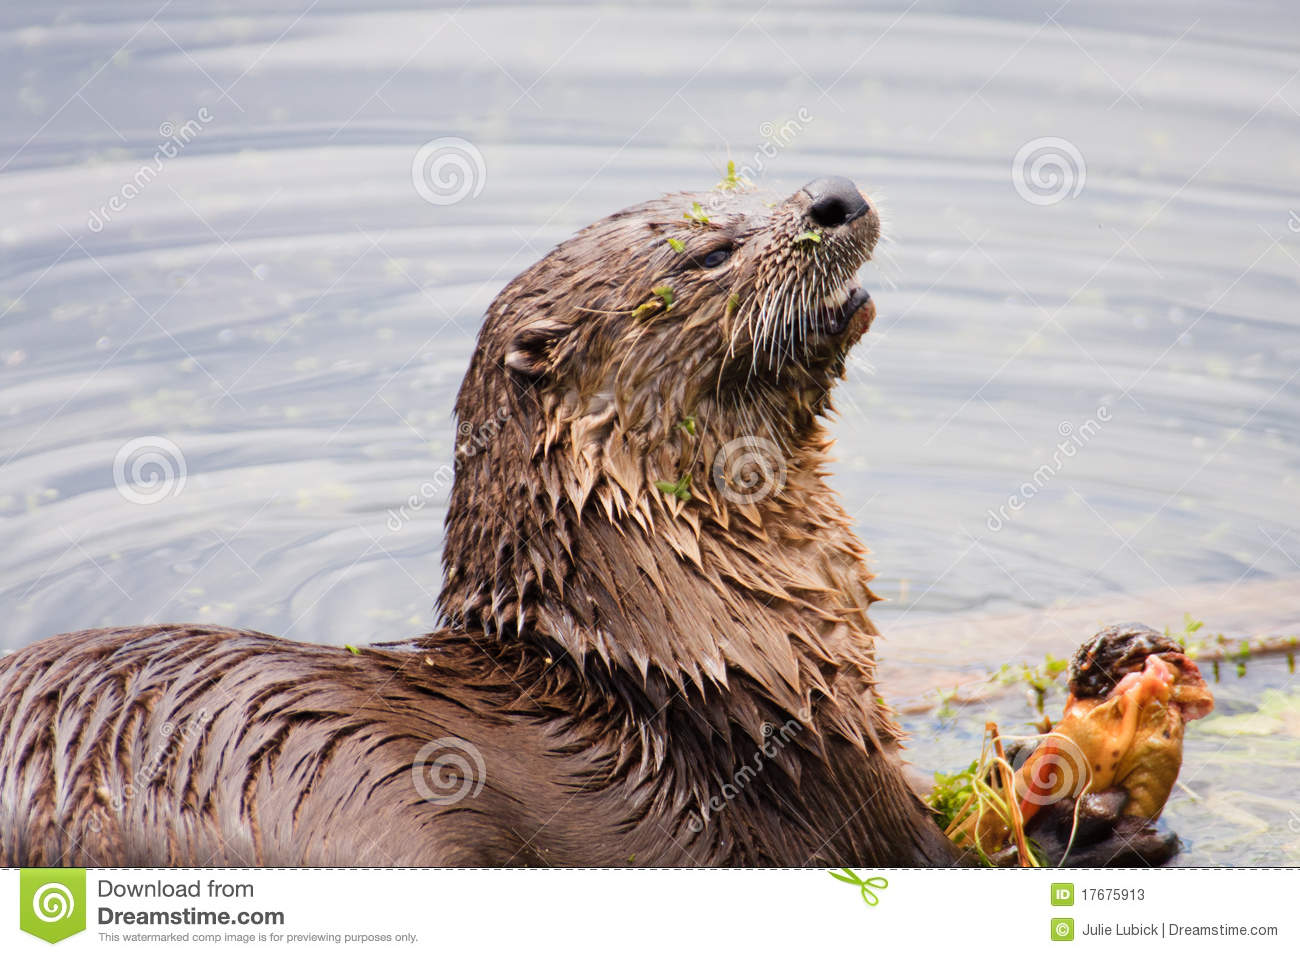 River otter eating fish stock photos image 17675913 for Dreaming of eating fish